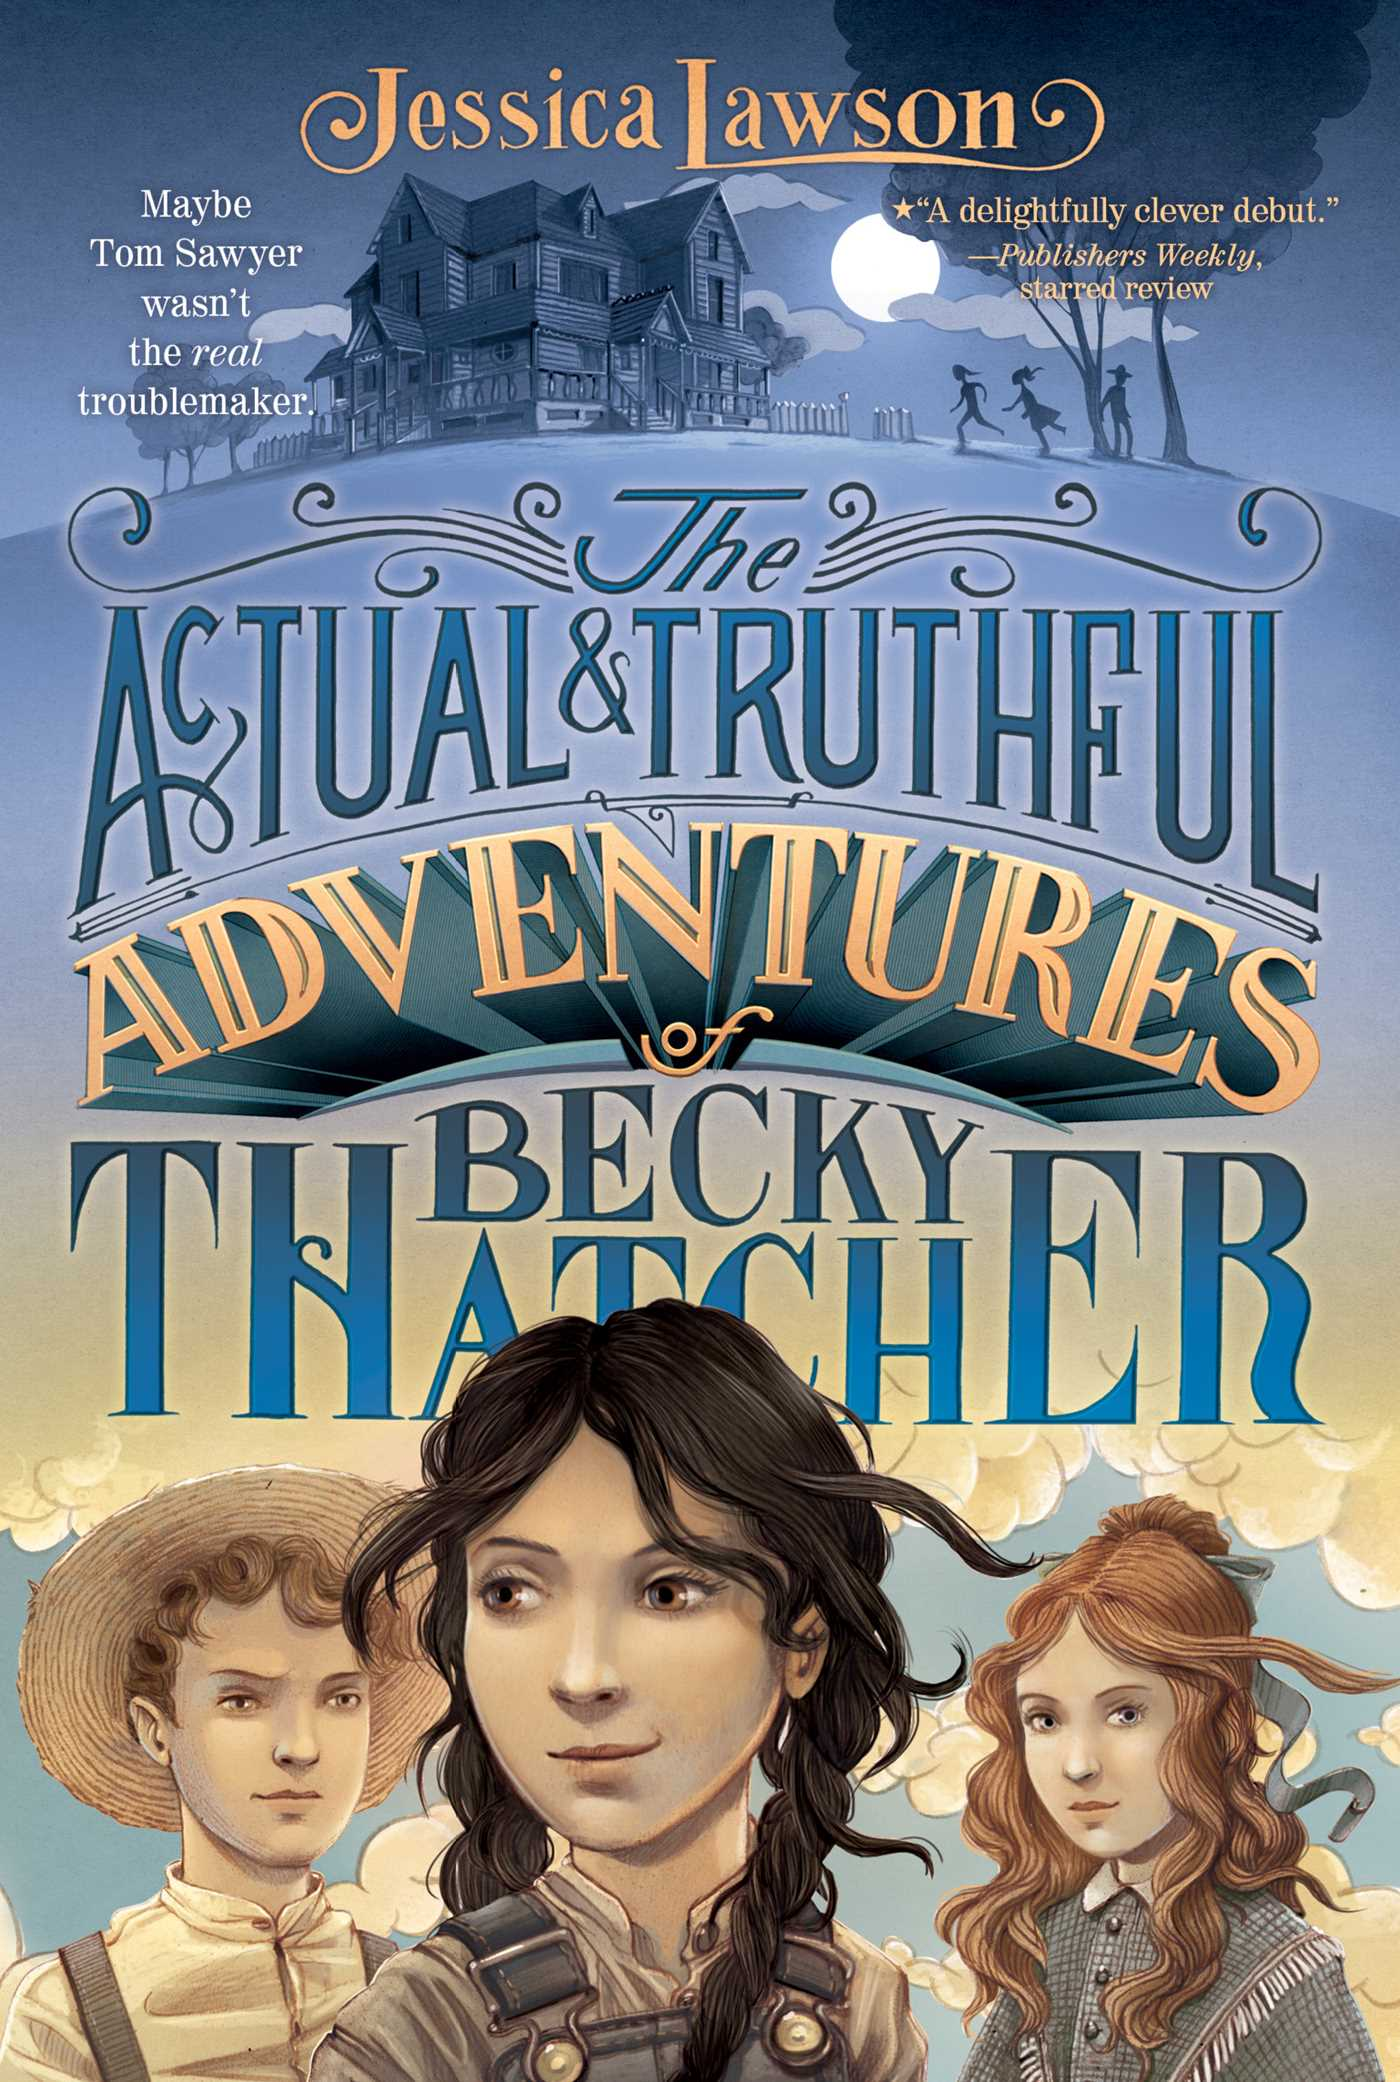 The actual truthful adventures of becky thatcher 9781481401531 hr